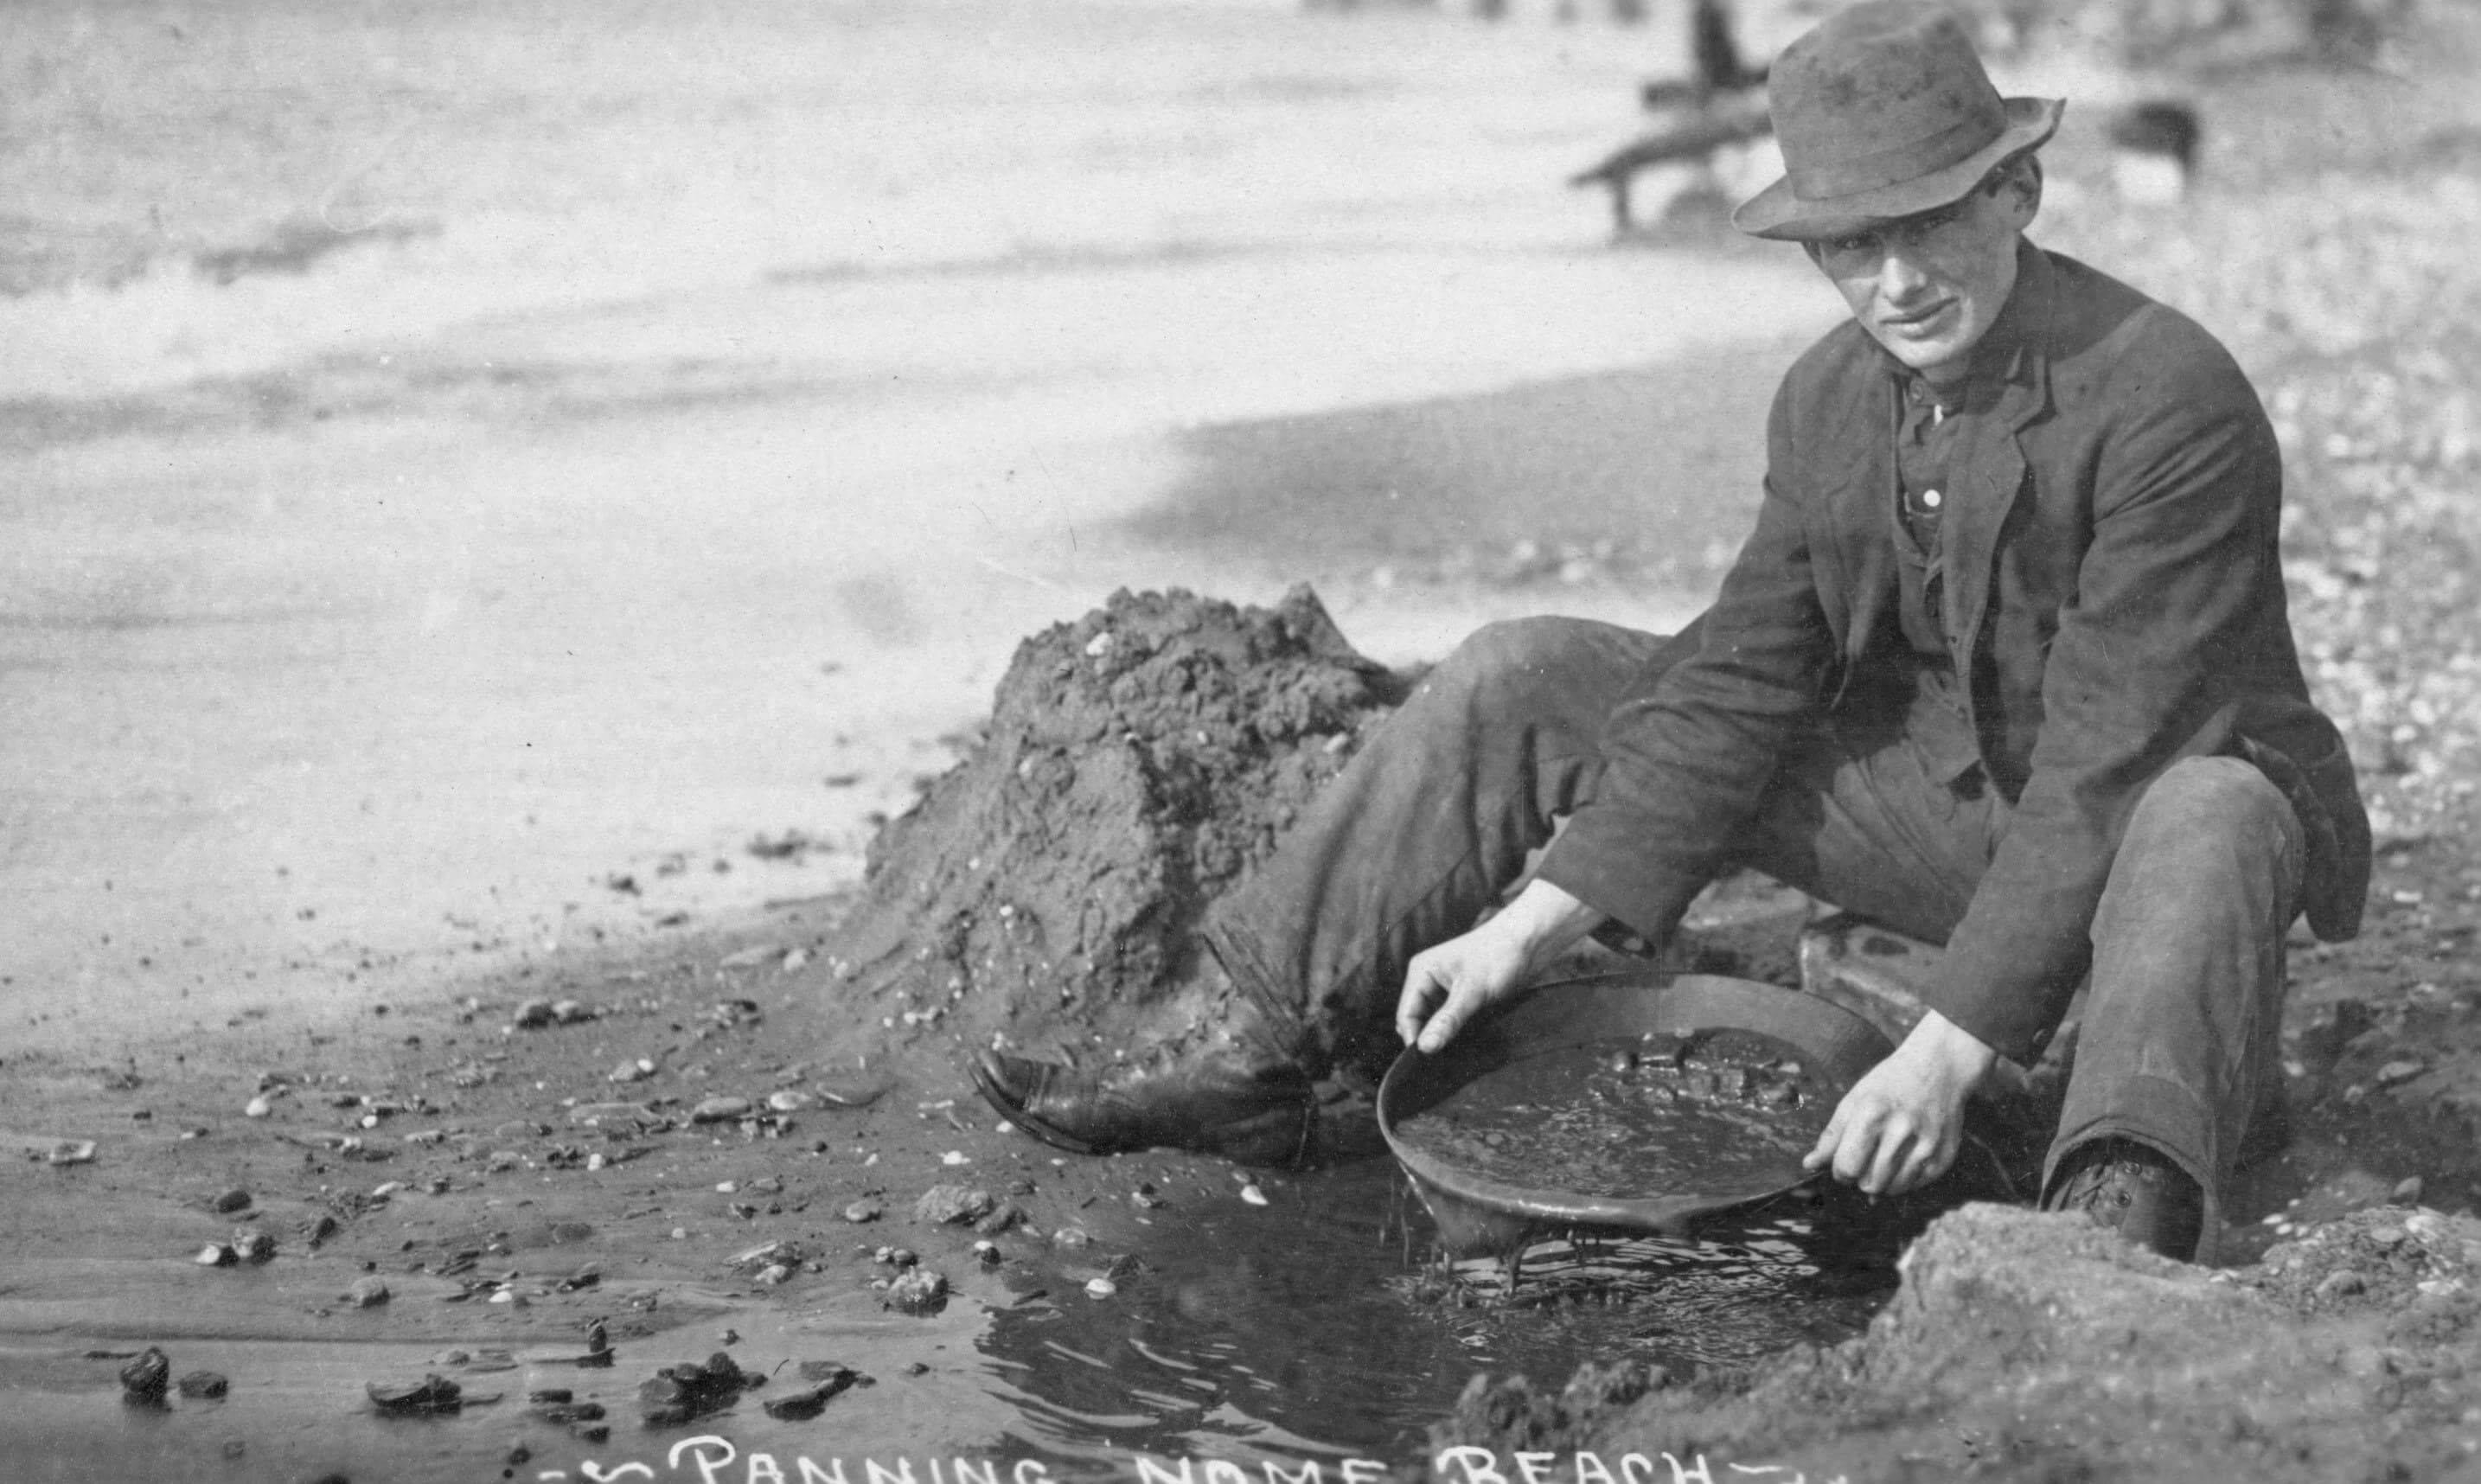 Man panning gold on Nome, Alaska, beach in the early 20th century